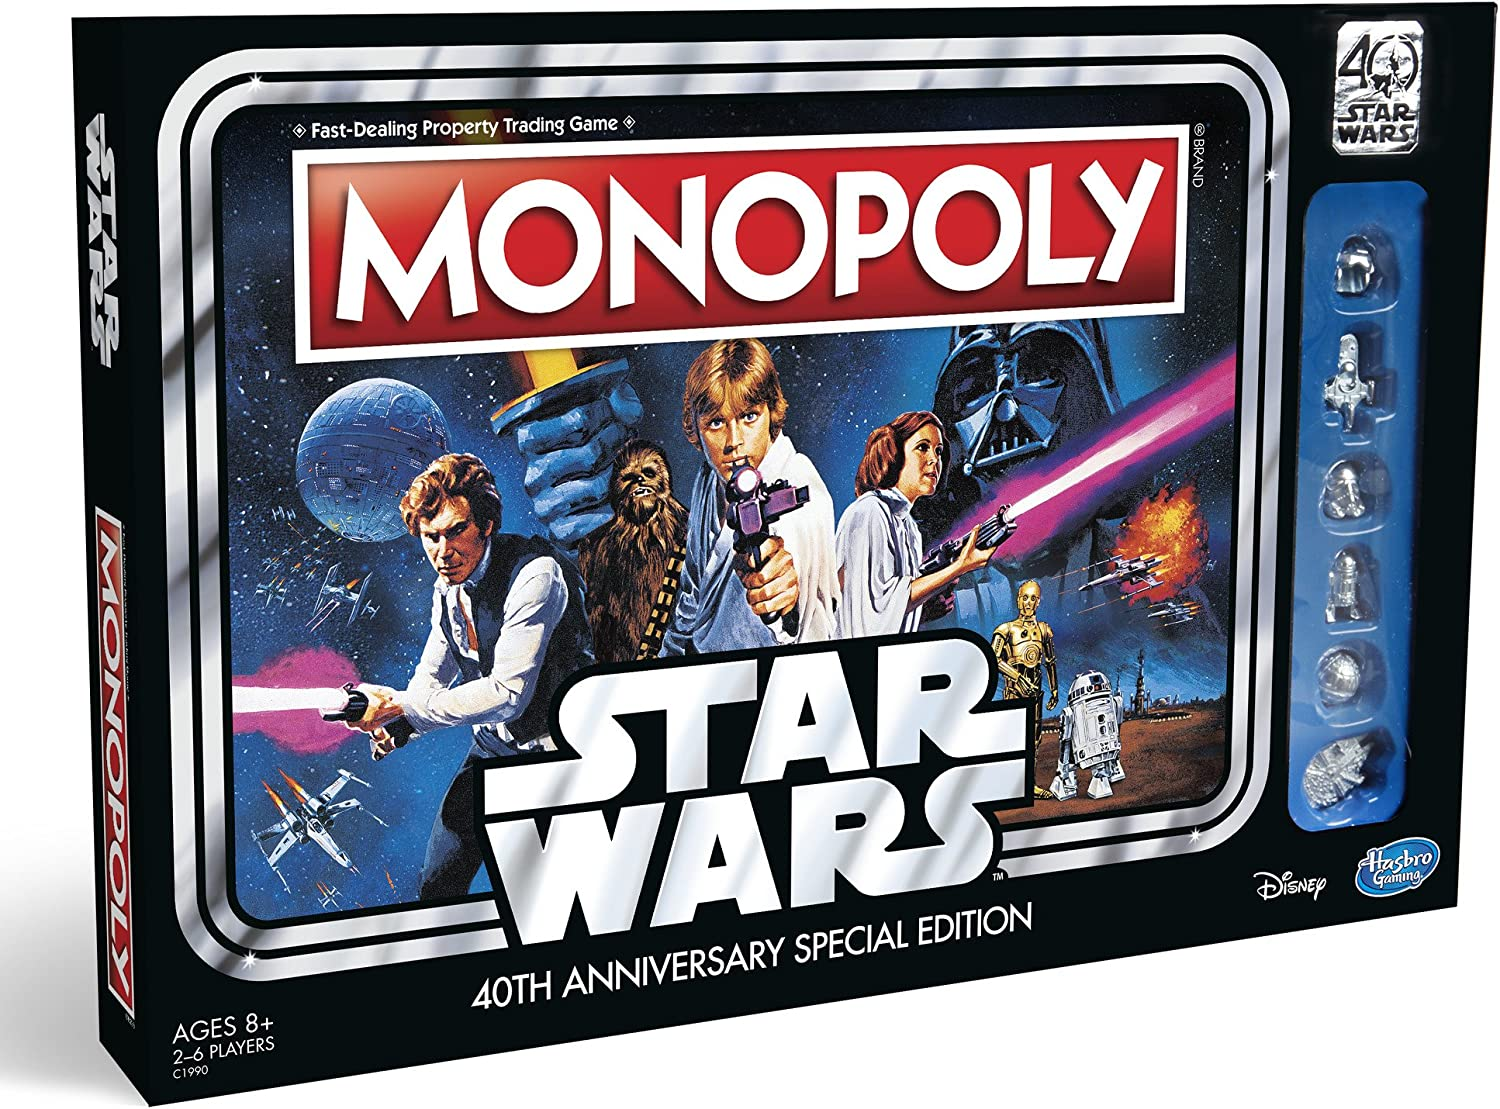 Amazon.com: Hasbro Gaming Monopoly Game: Star Wars 40th Anniversary Special  Edition: Toys & Games